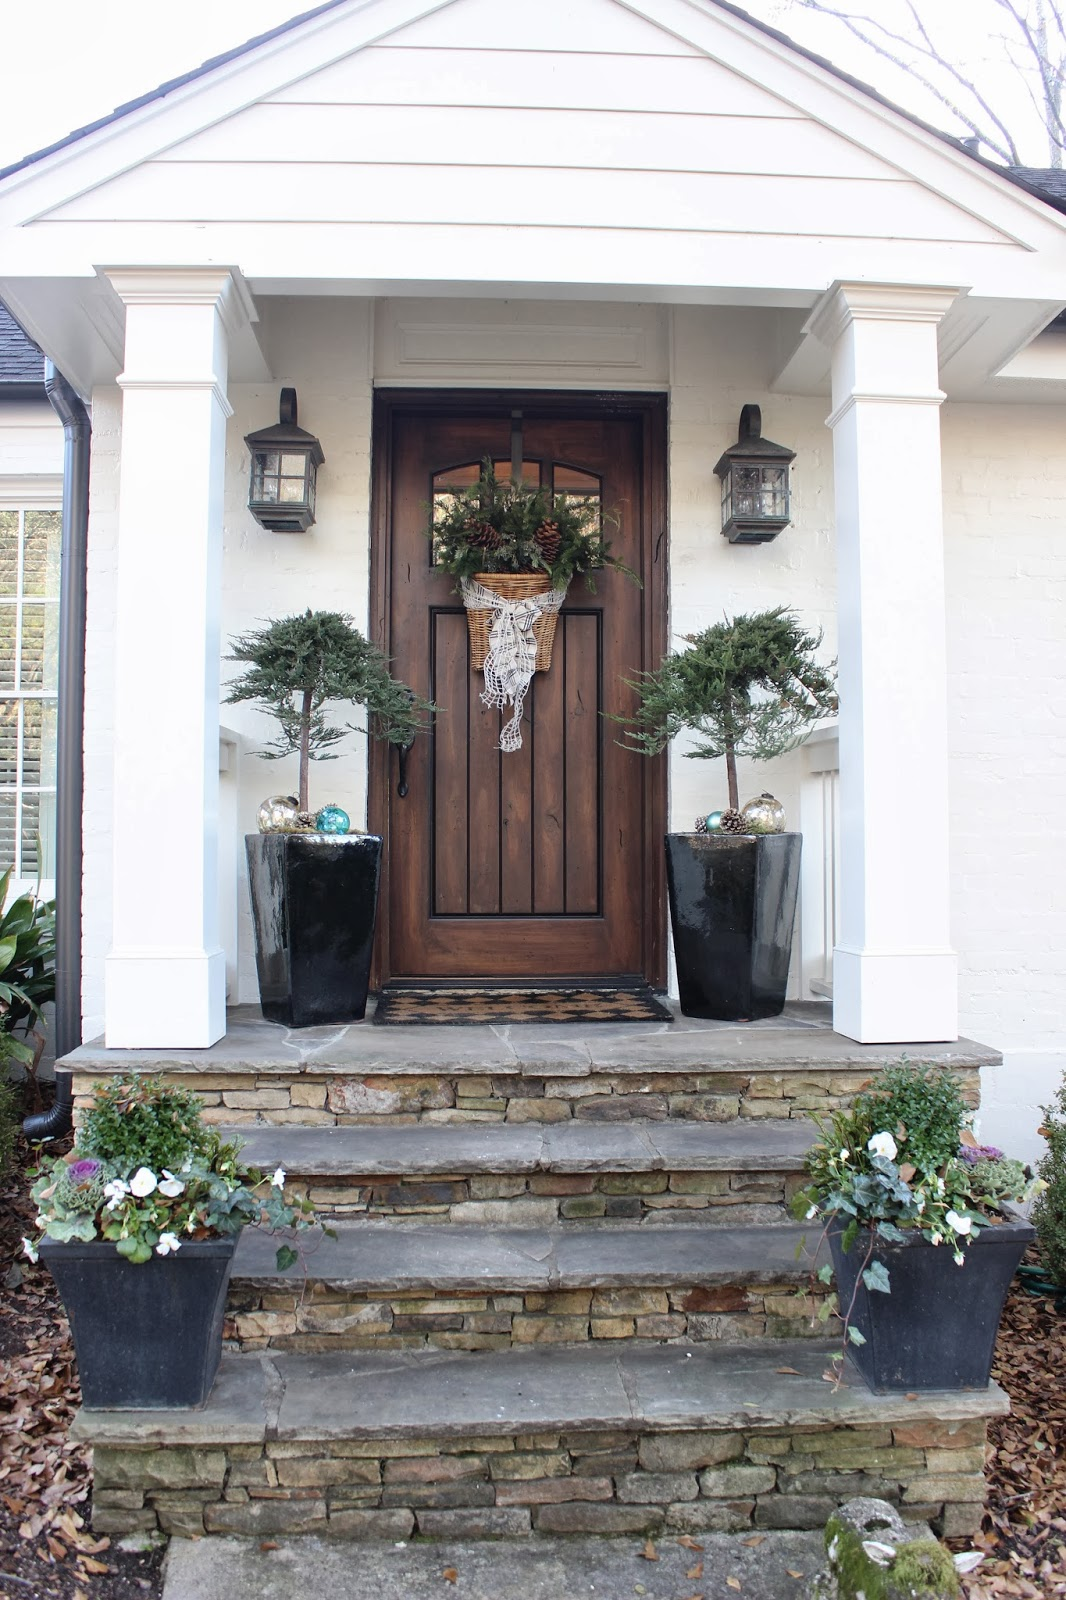 Porch columns coaches and front porches on pinterest for Exterior entryway designs